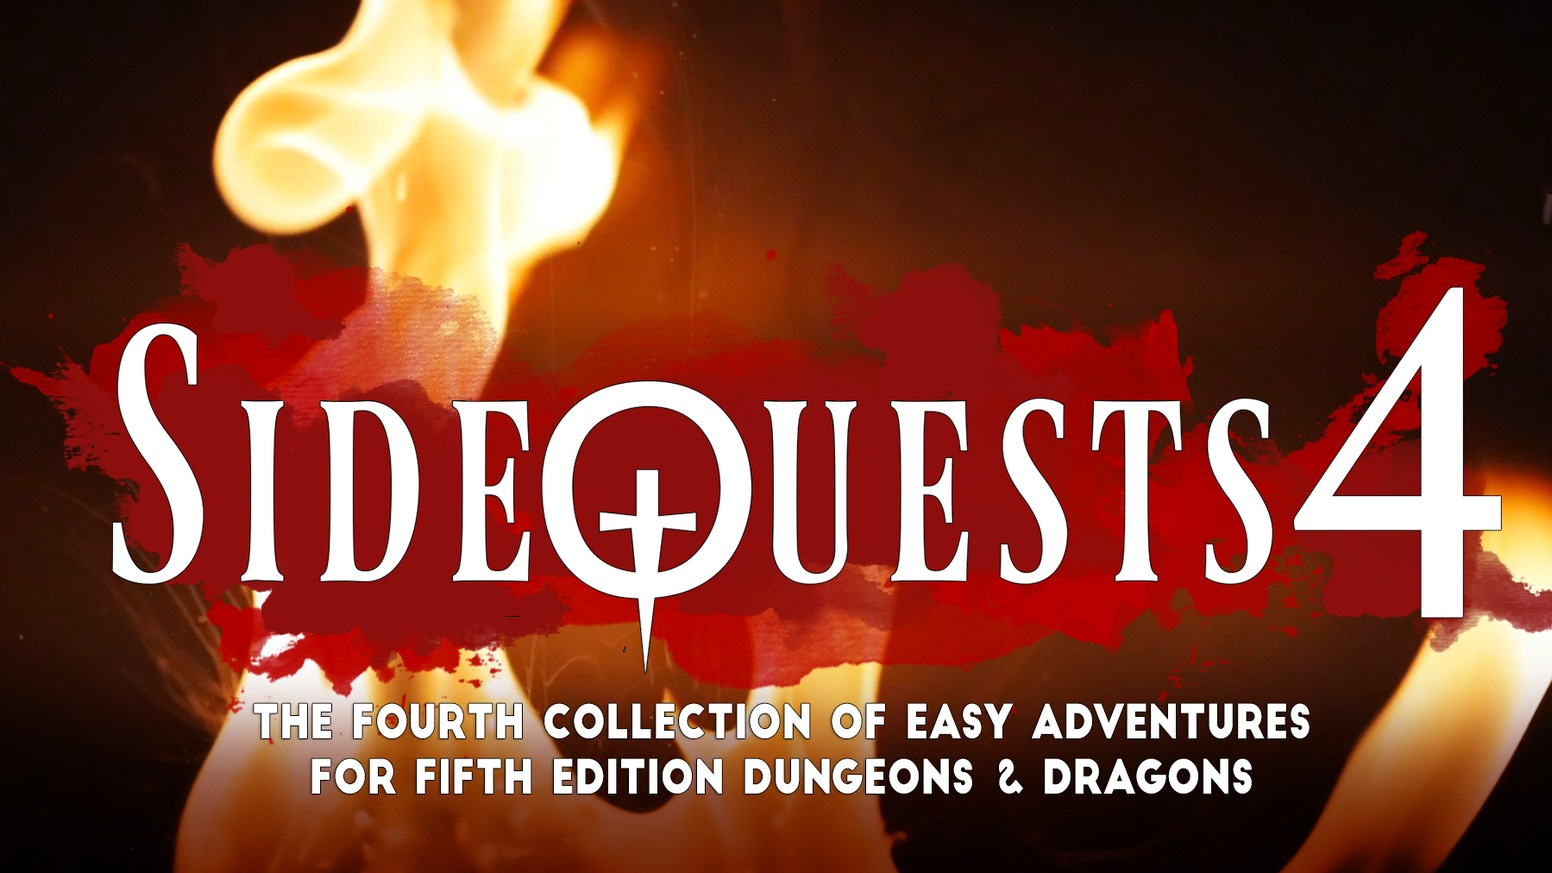 The fourth collection of instant adventure modules for Fifth Edition D&D, designed to easily implement into your campaign!